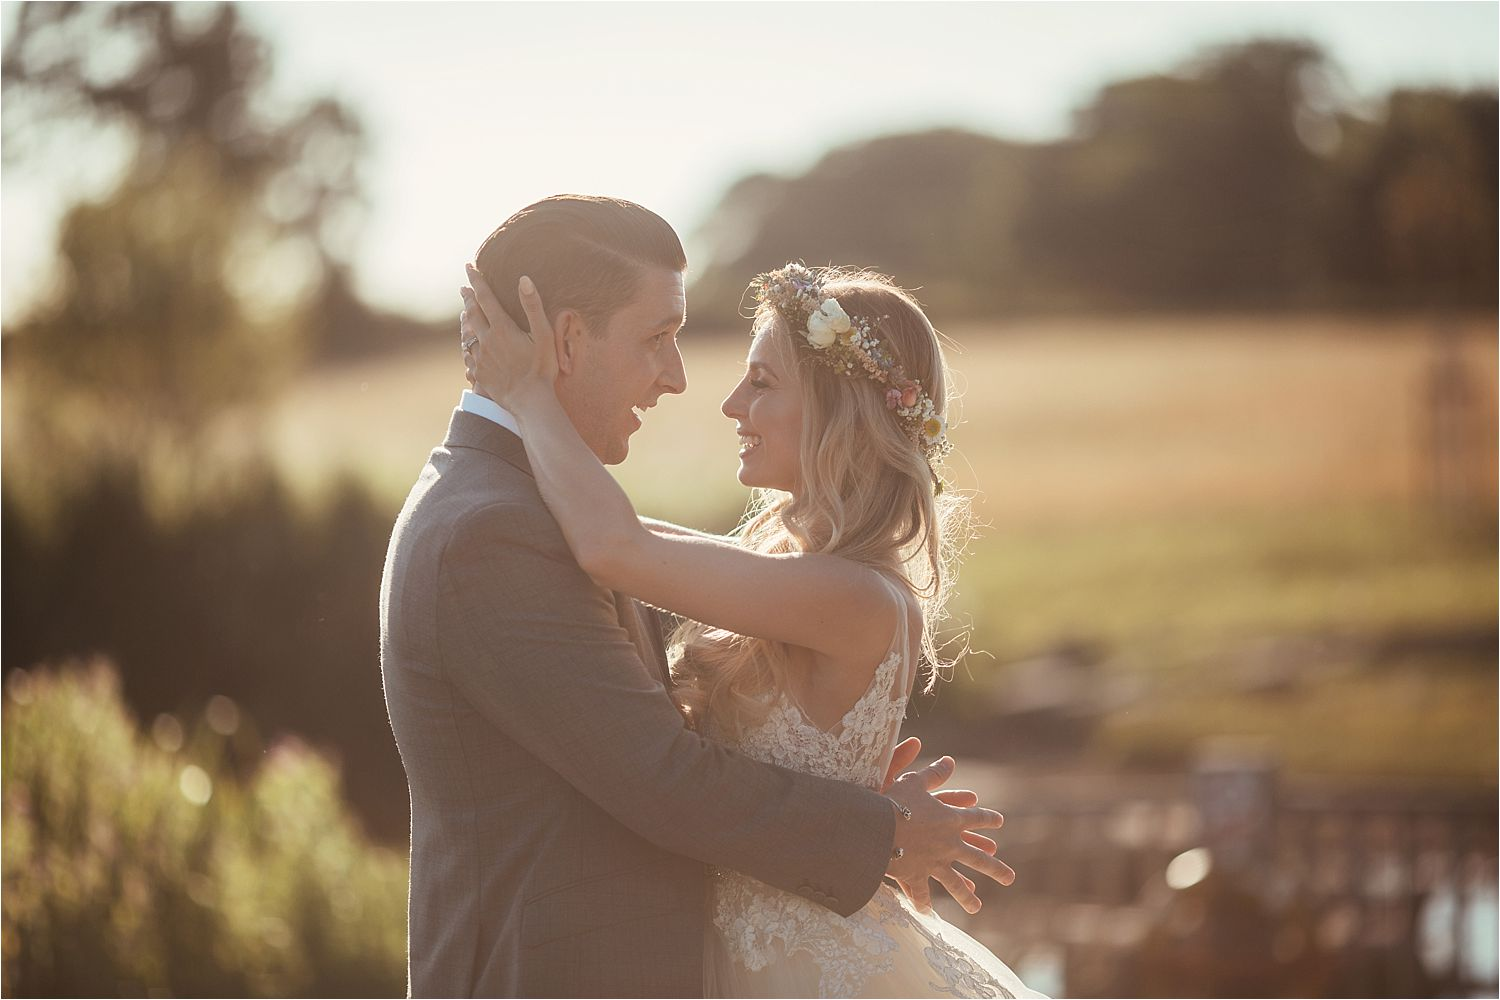 Bride and groom together in ground of Sandhole Oak Barn wedding venue, Cheshire